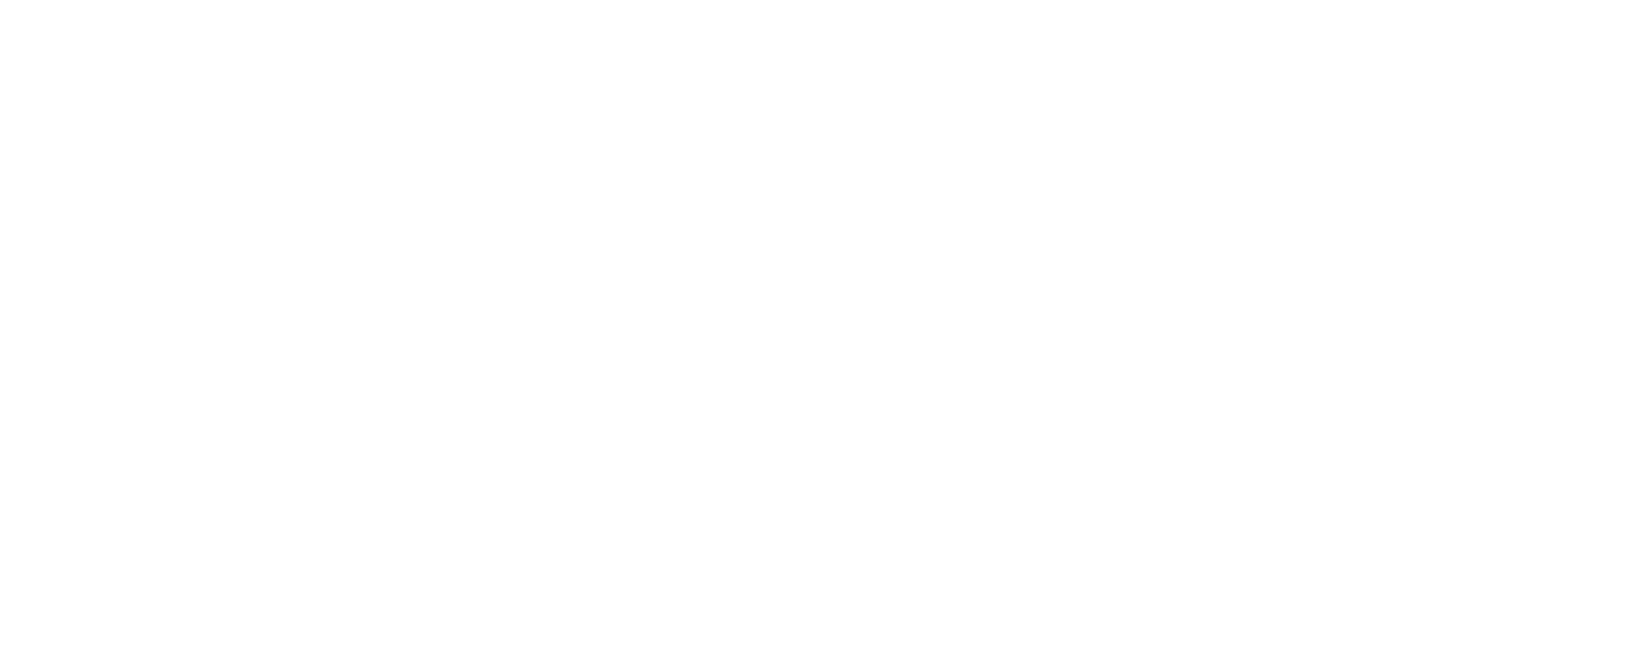 Cellarcus Biosciences – The Standard in Extracellular Vesicle Analysis